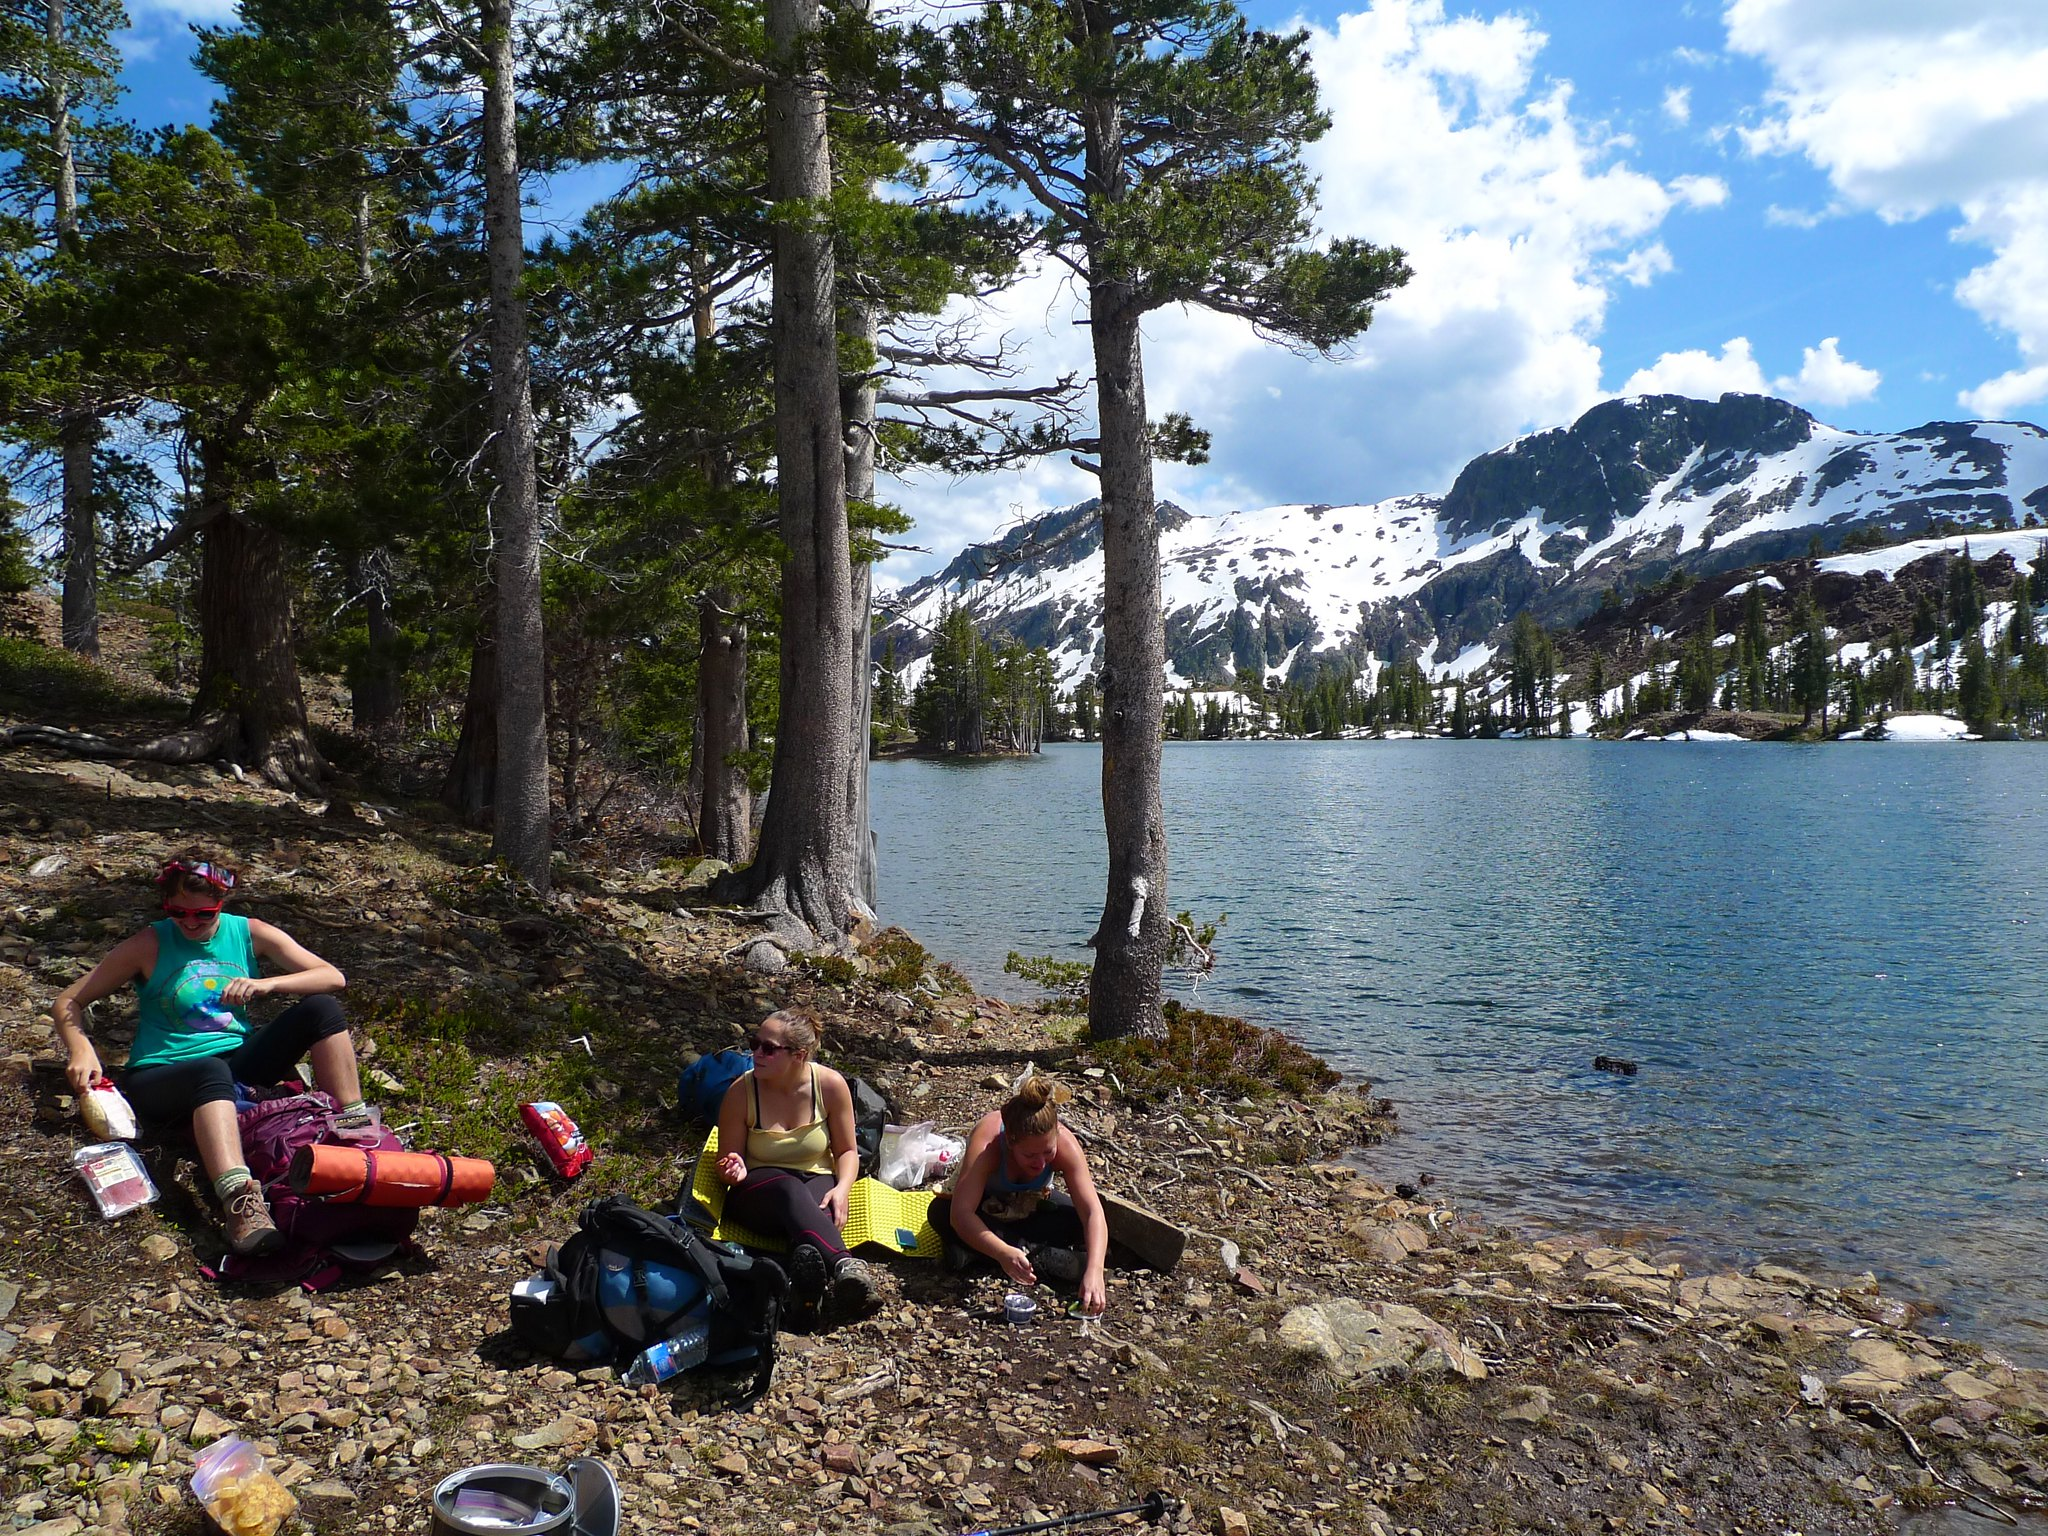 Lunch at Susie Lake